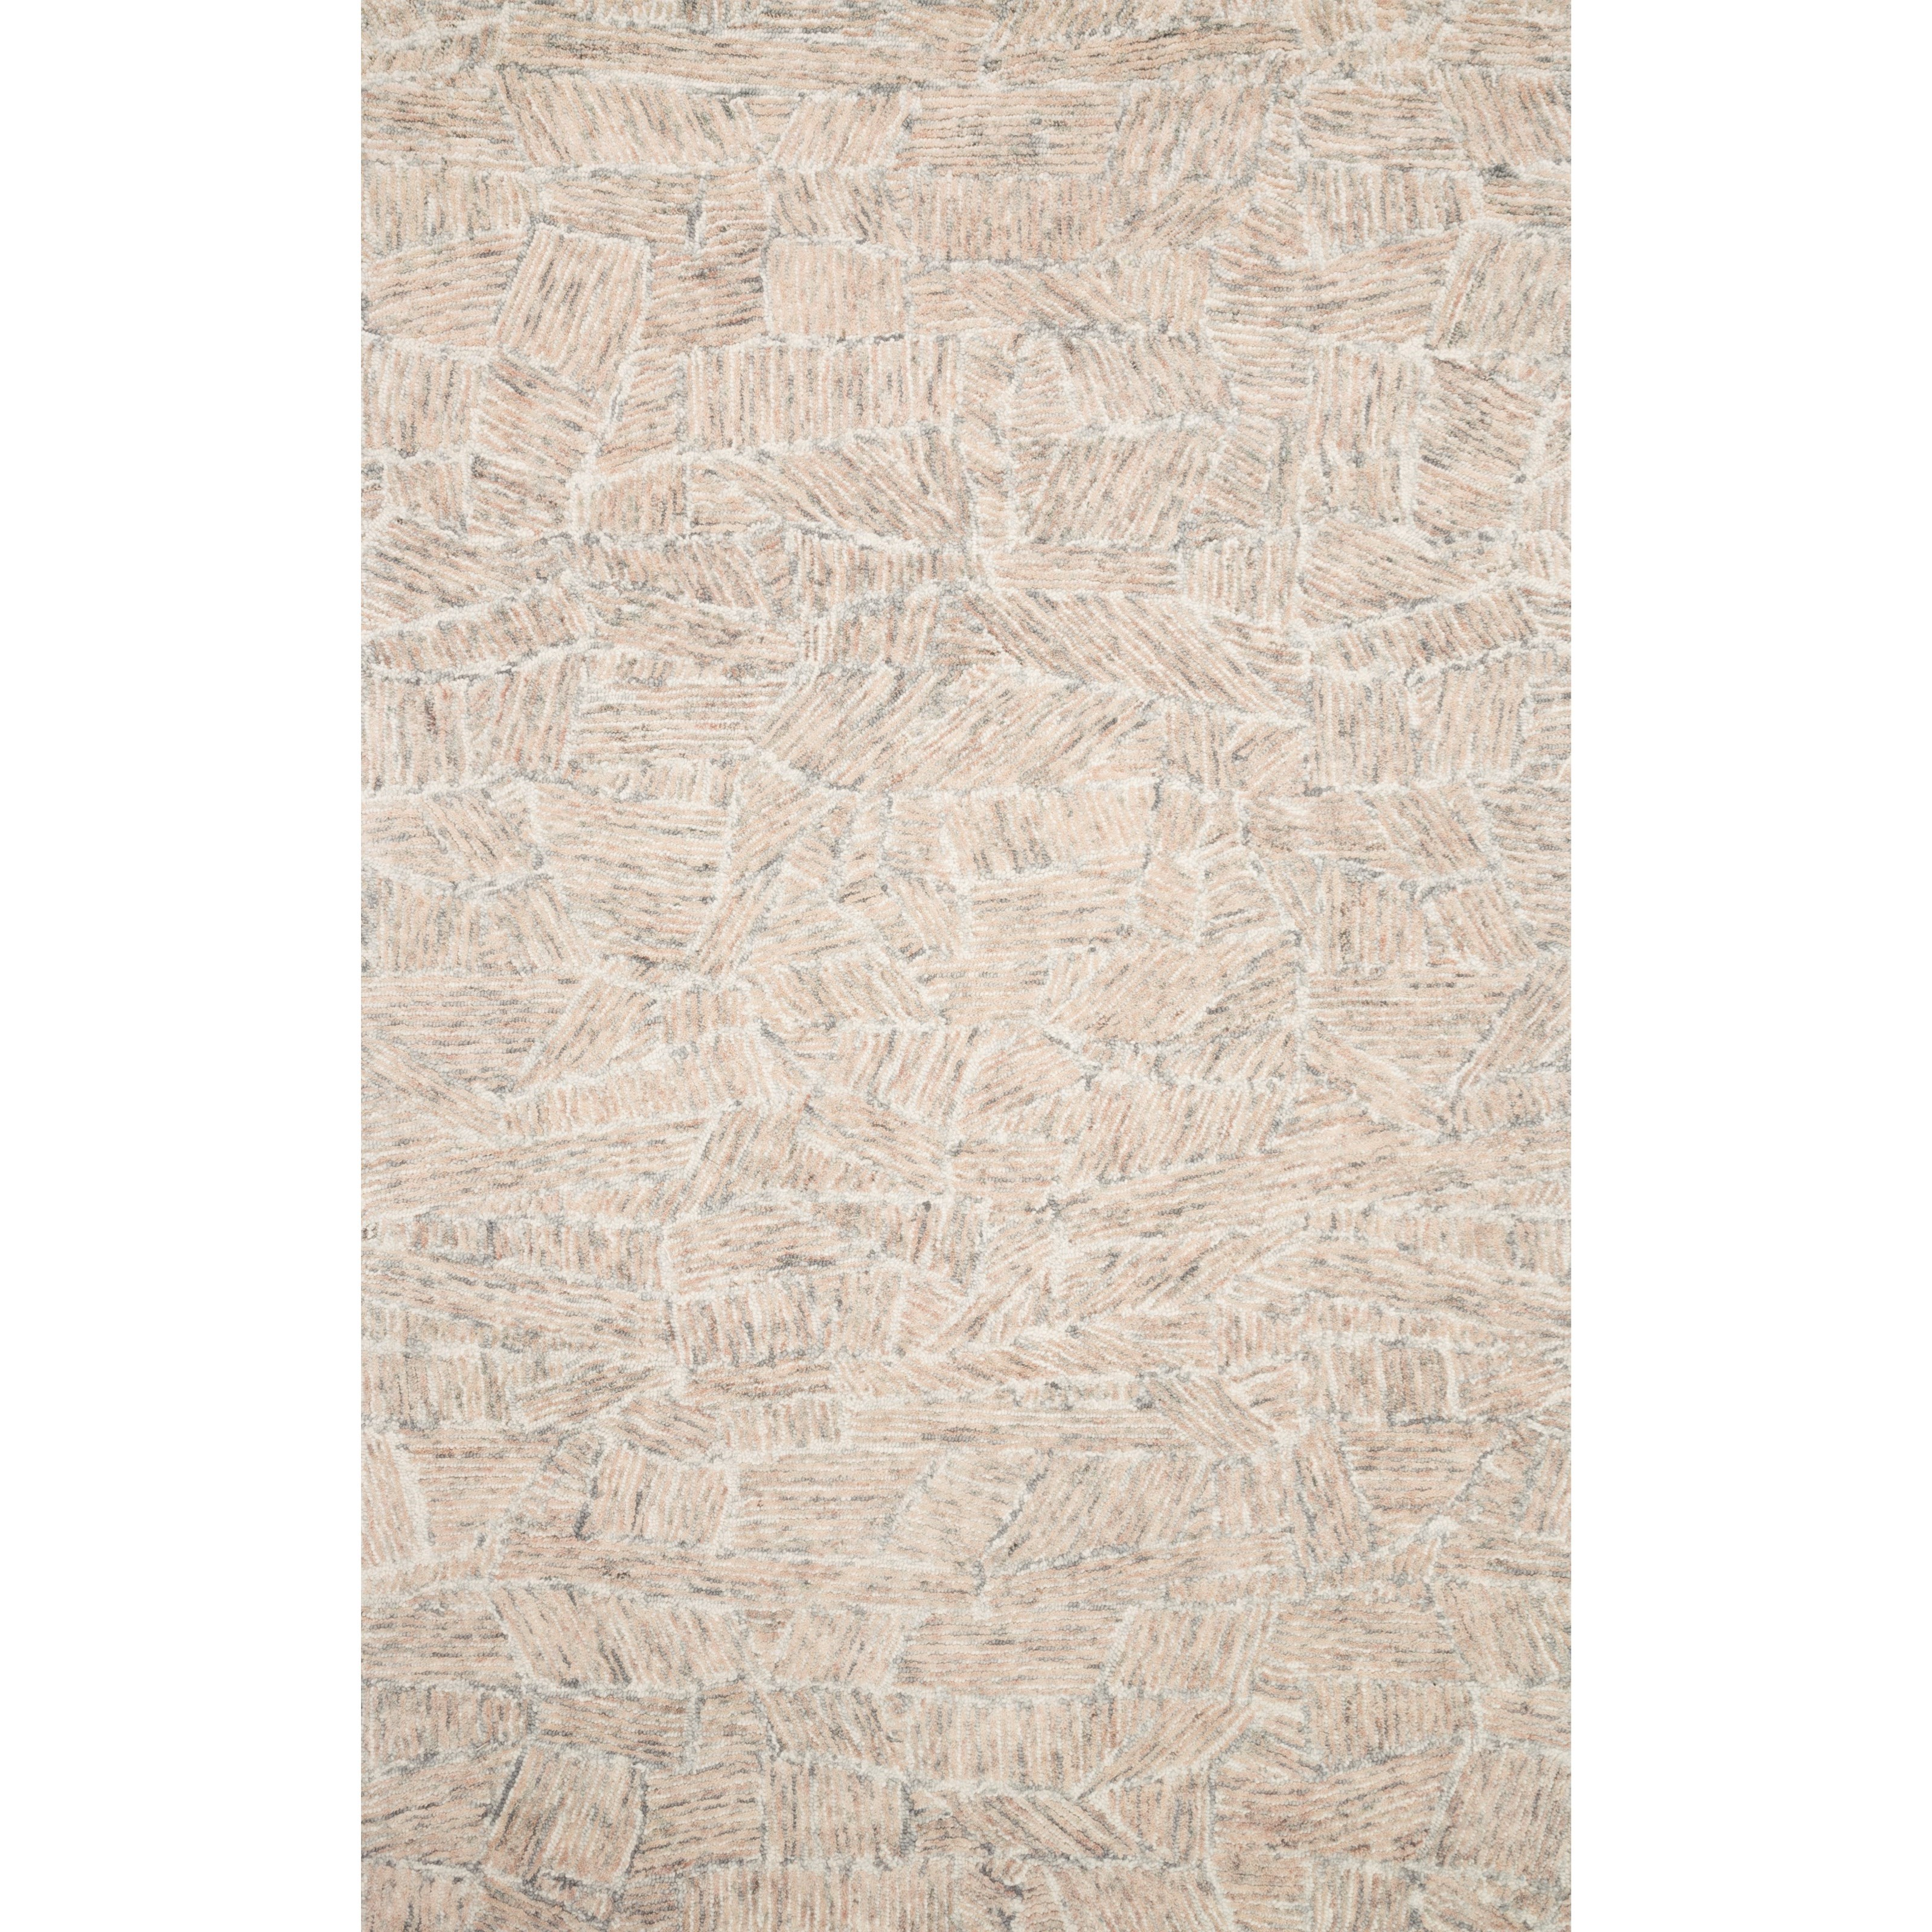 """Peregrine 1'6"""" x 1'6""""  Blush Rug by Loloi Rugs at Virginia Furniture Market"""